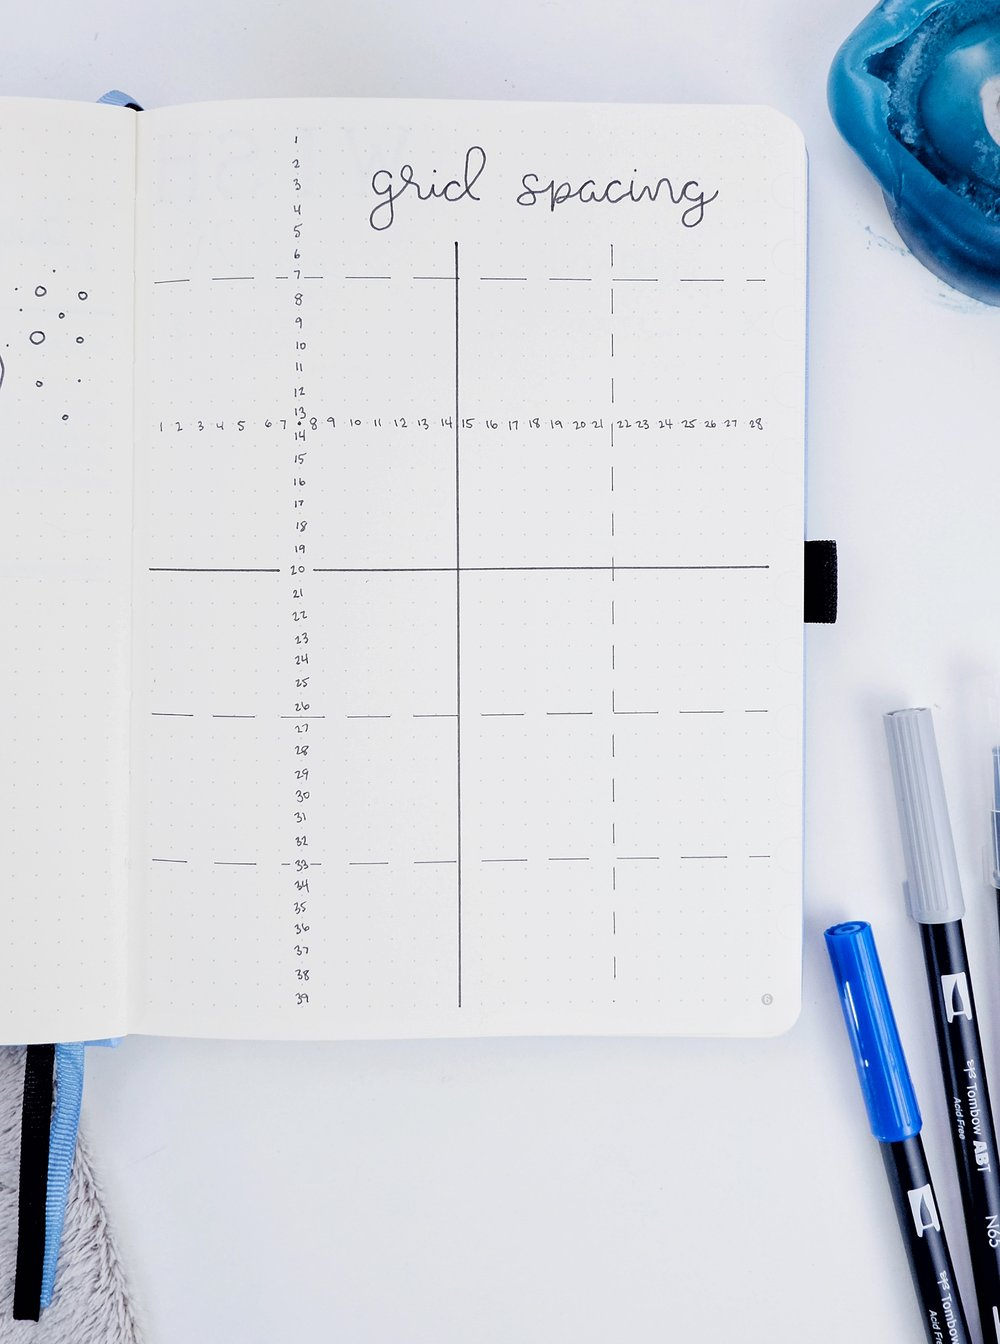 Bullet Journal Grid Spacing Reference Page // New BuJo Set Up 2018 // Plant Based Bride